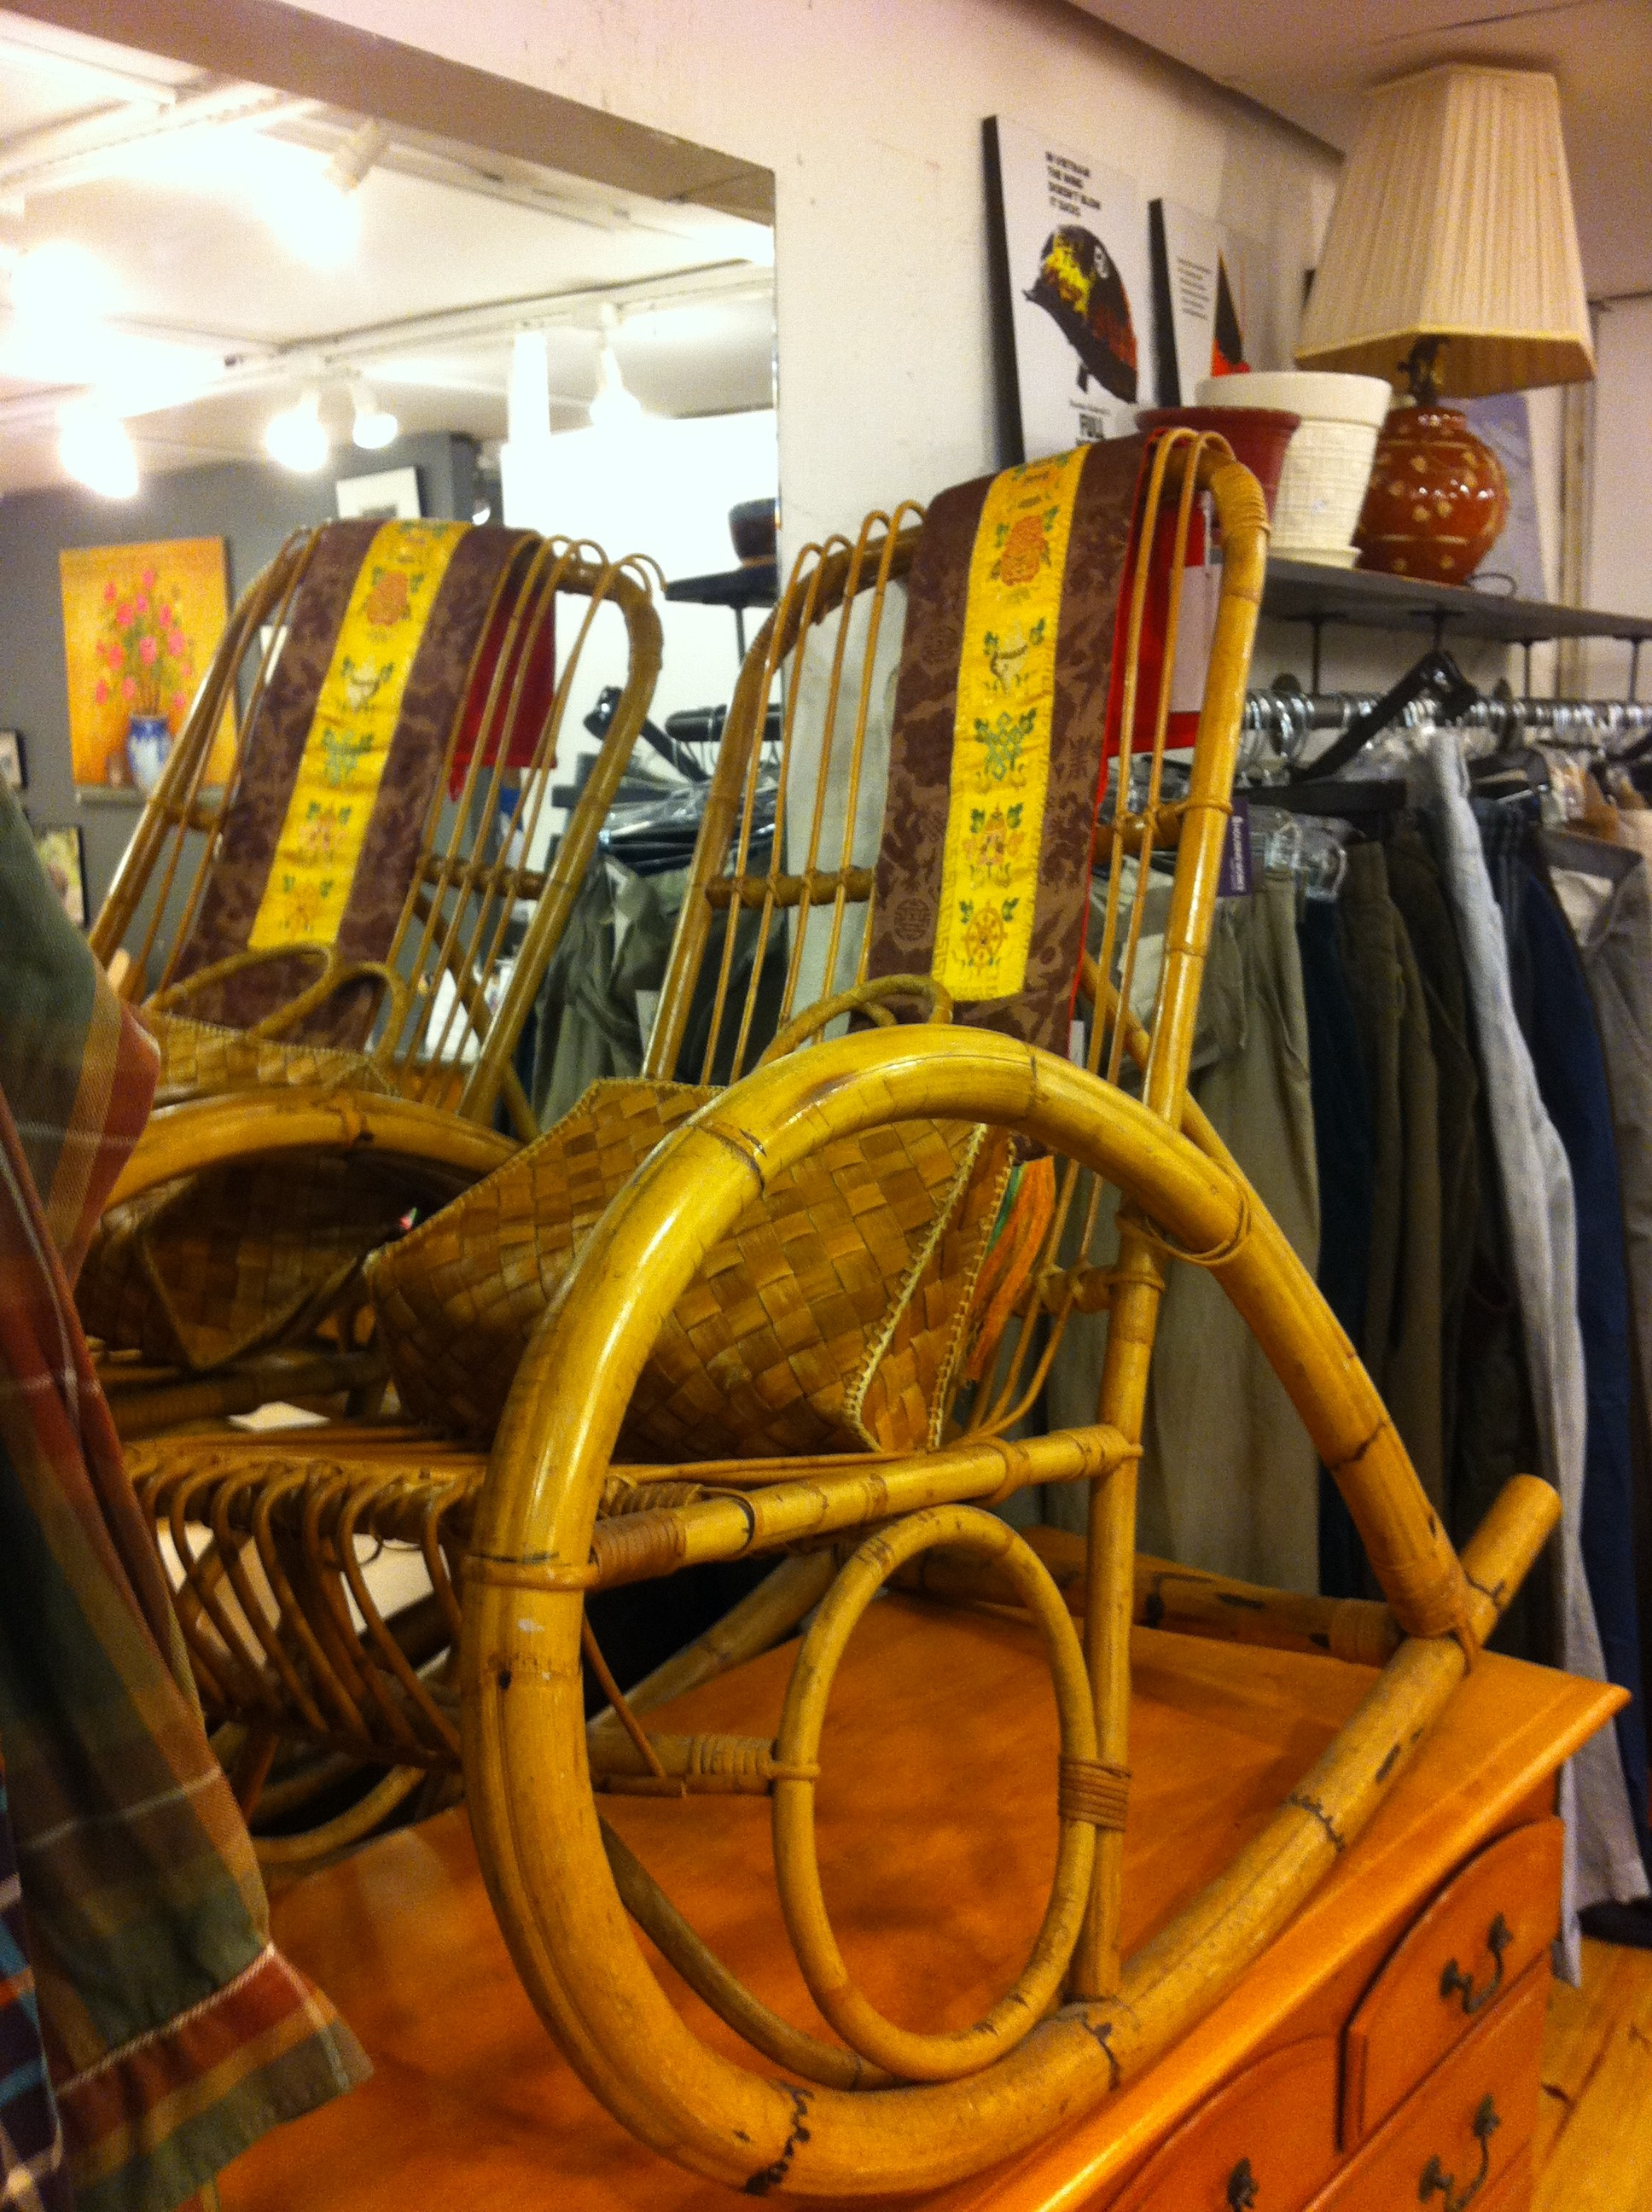 A pic of a bamboo rocking chair at thrift store